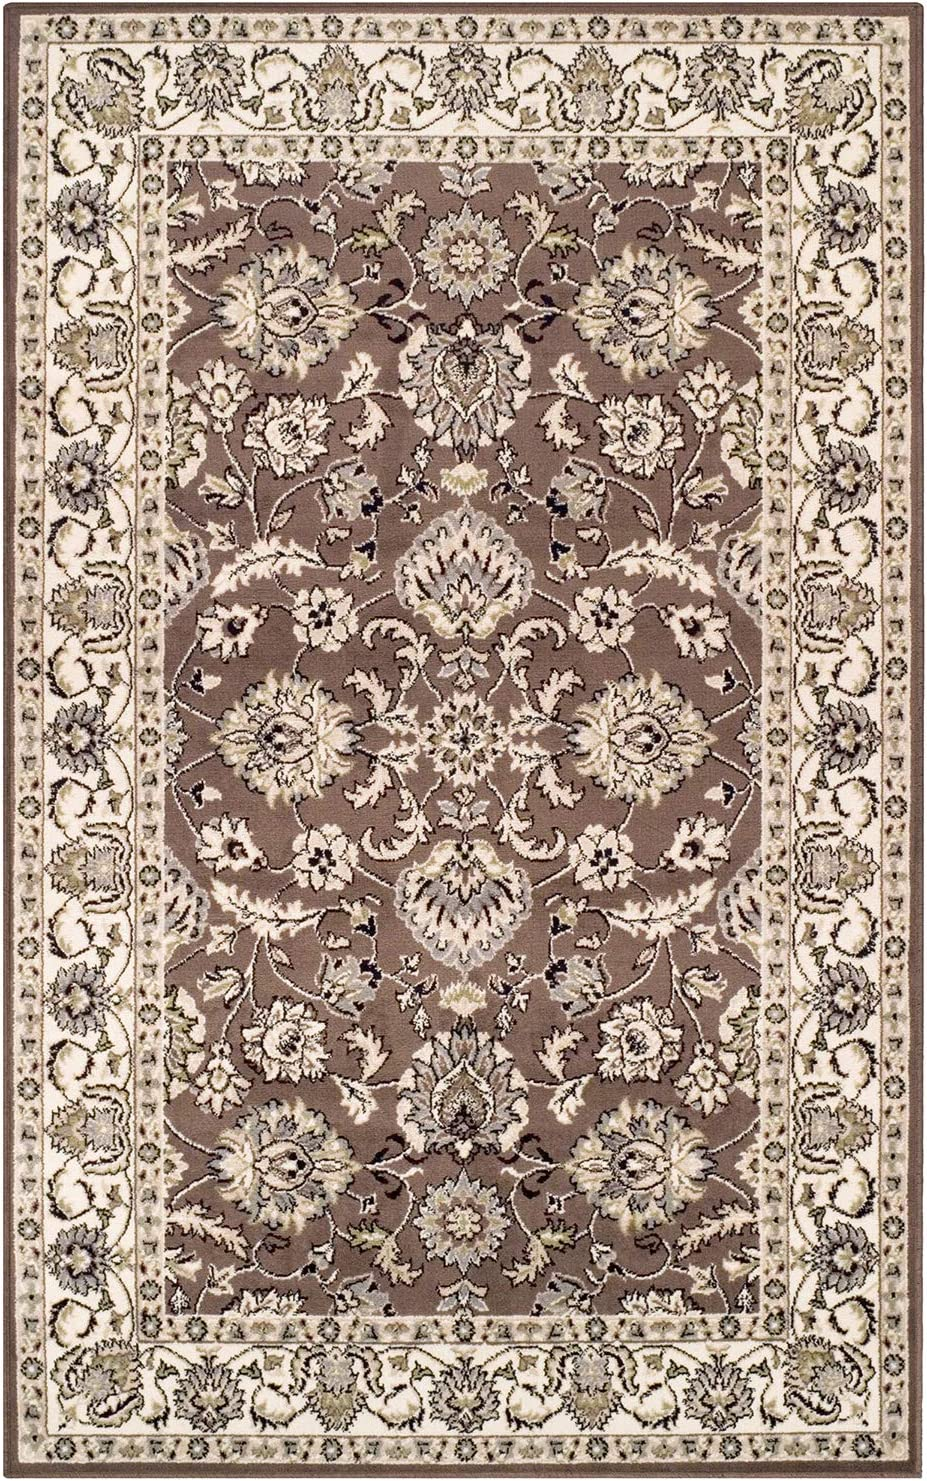 Amazon Com Superior Lille 8 X 10 Area Rug Contemporary Living Room Bedroom Area Rug Anti Static And Water Repellent For Residential Or Commercial Use Furniture Decor